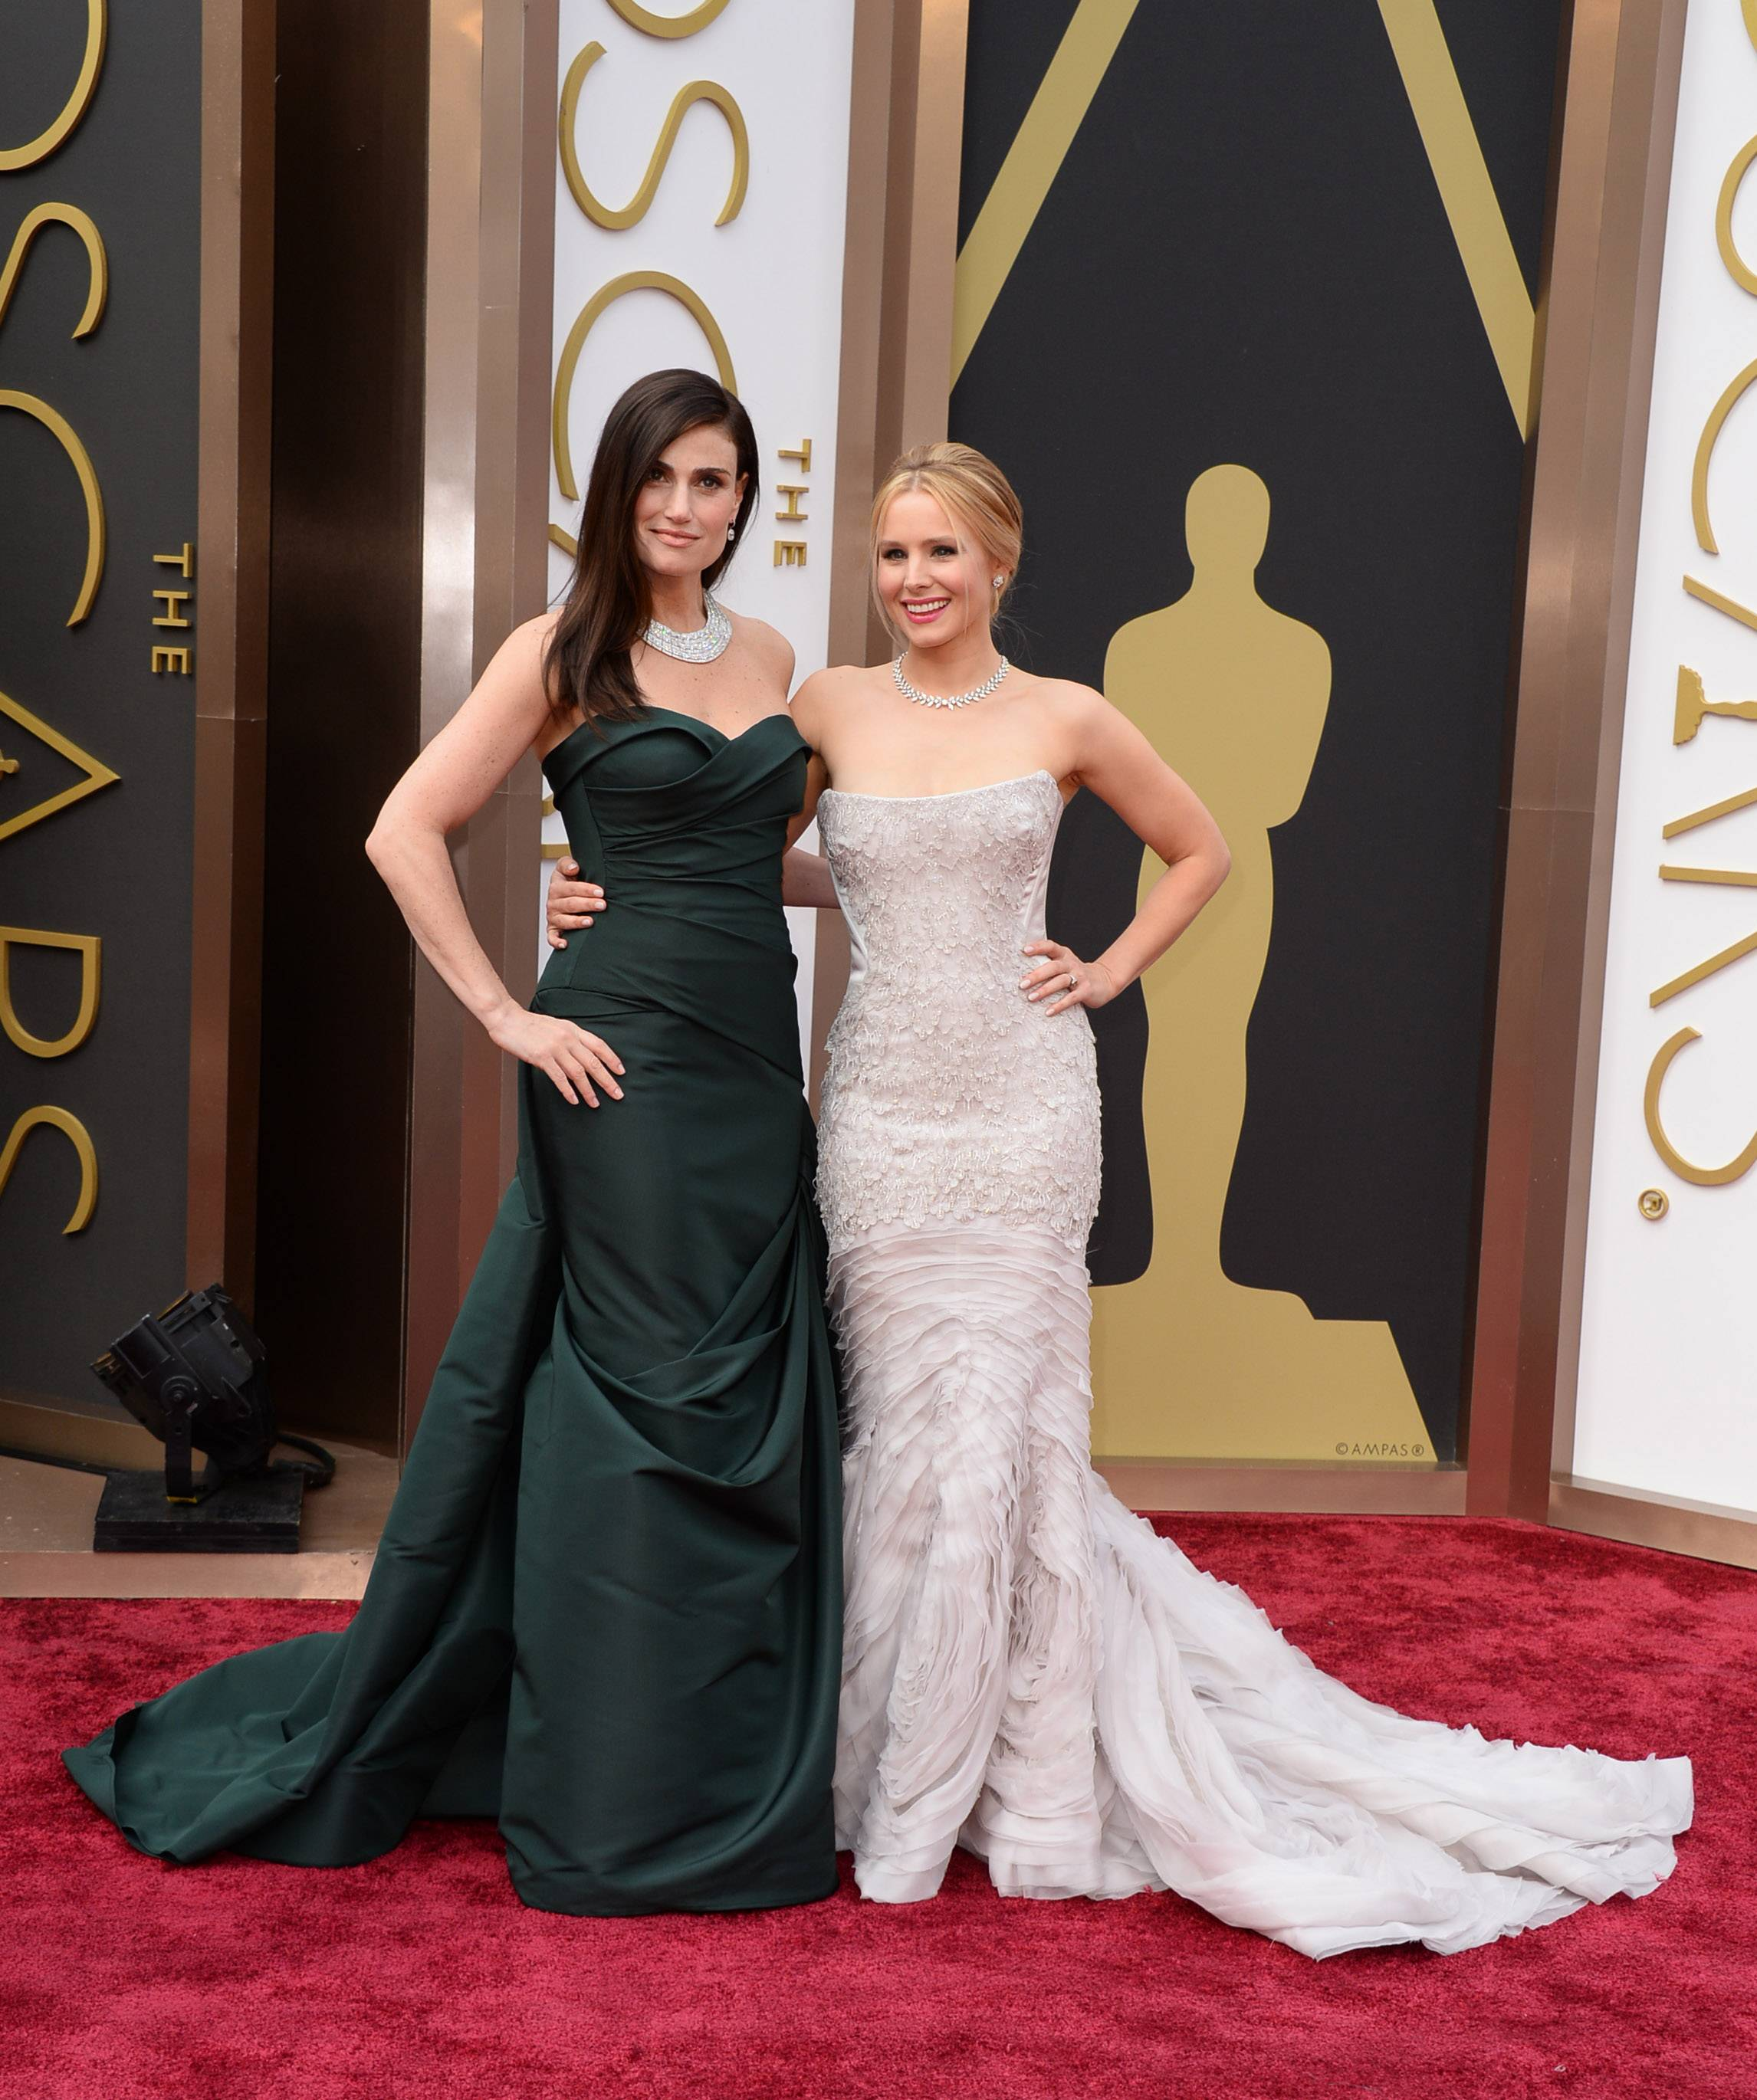 It's Elsa and Anna! Idina Menzel, left, and Kristen Bell take a moment to pose together for photographers at the Oscars on Sunday at the Dolby Theatre in Los Angeles.